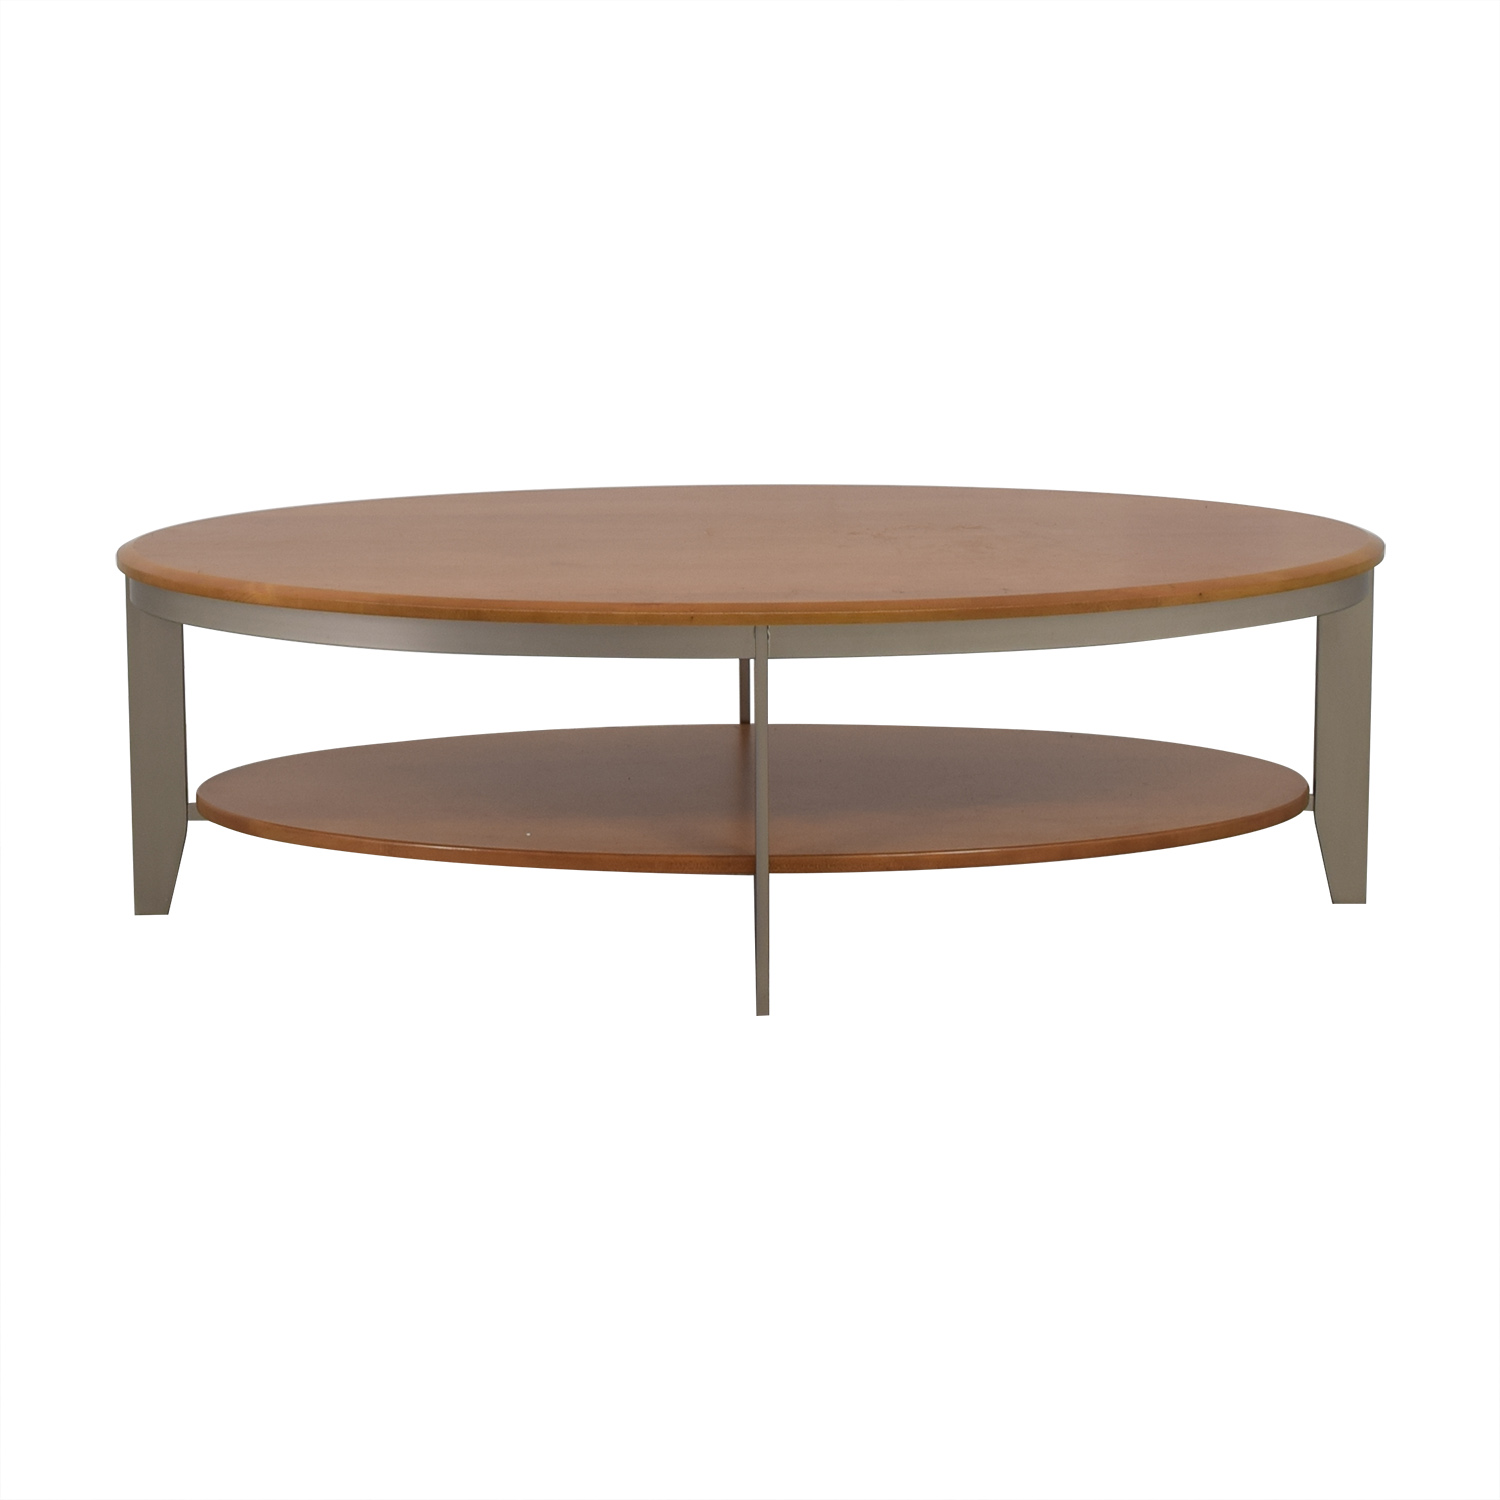 Two Tier Oval Wood Coffee Table